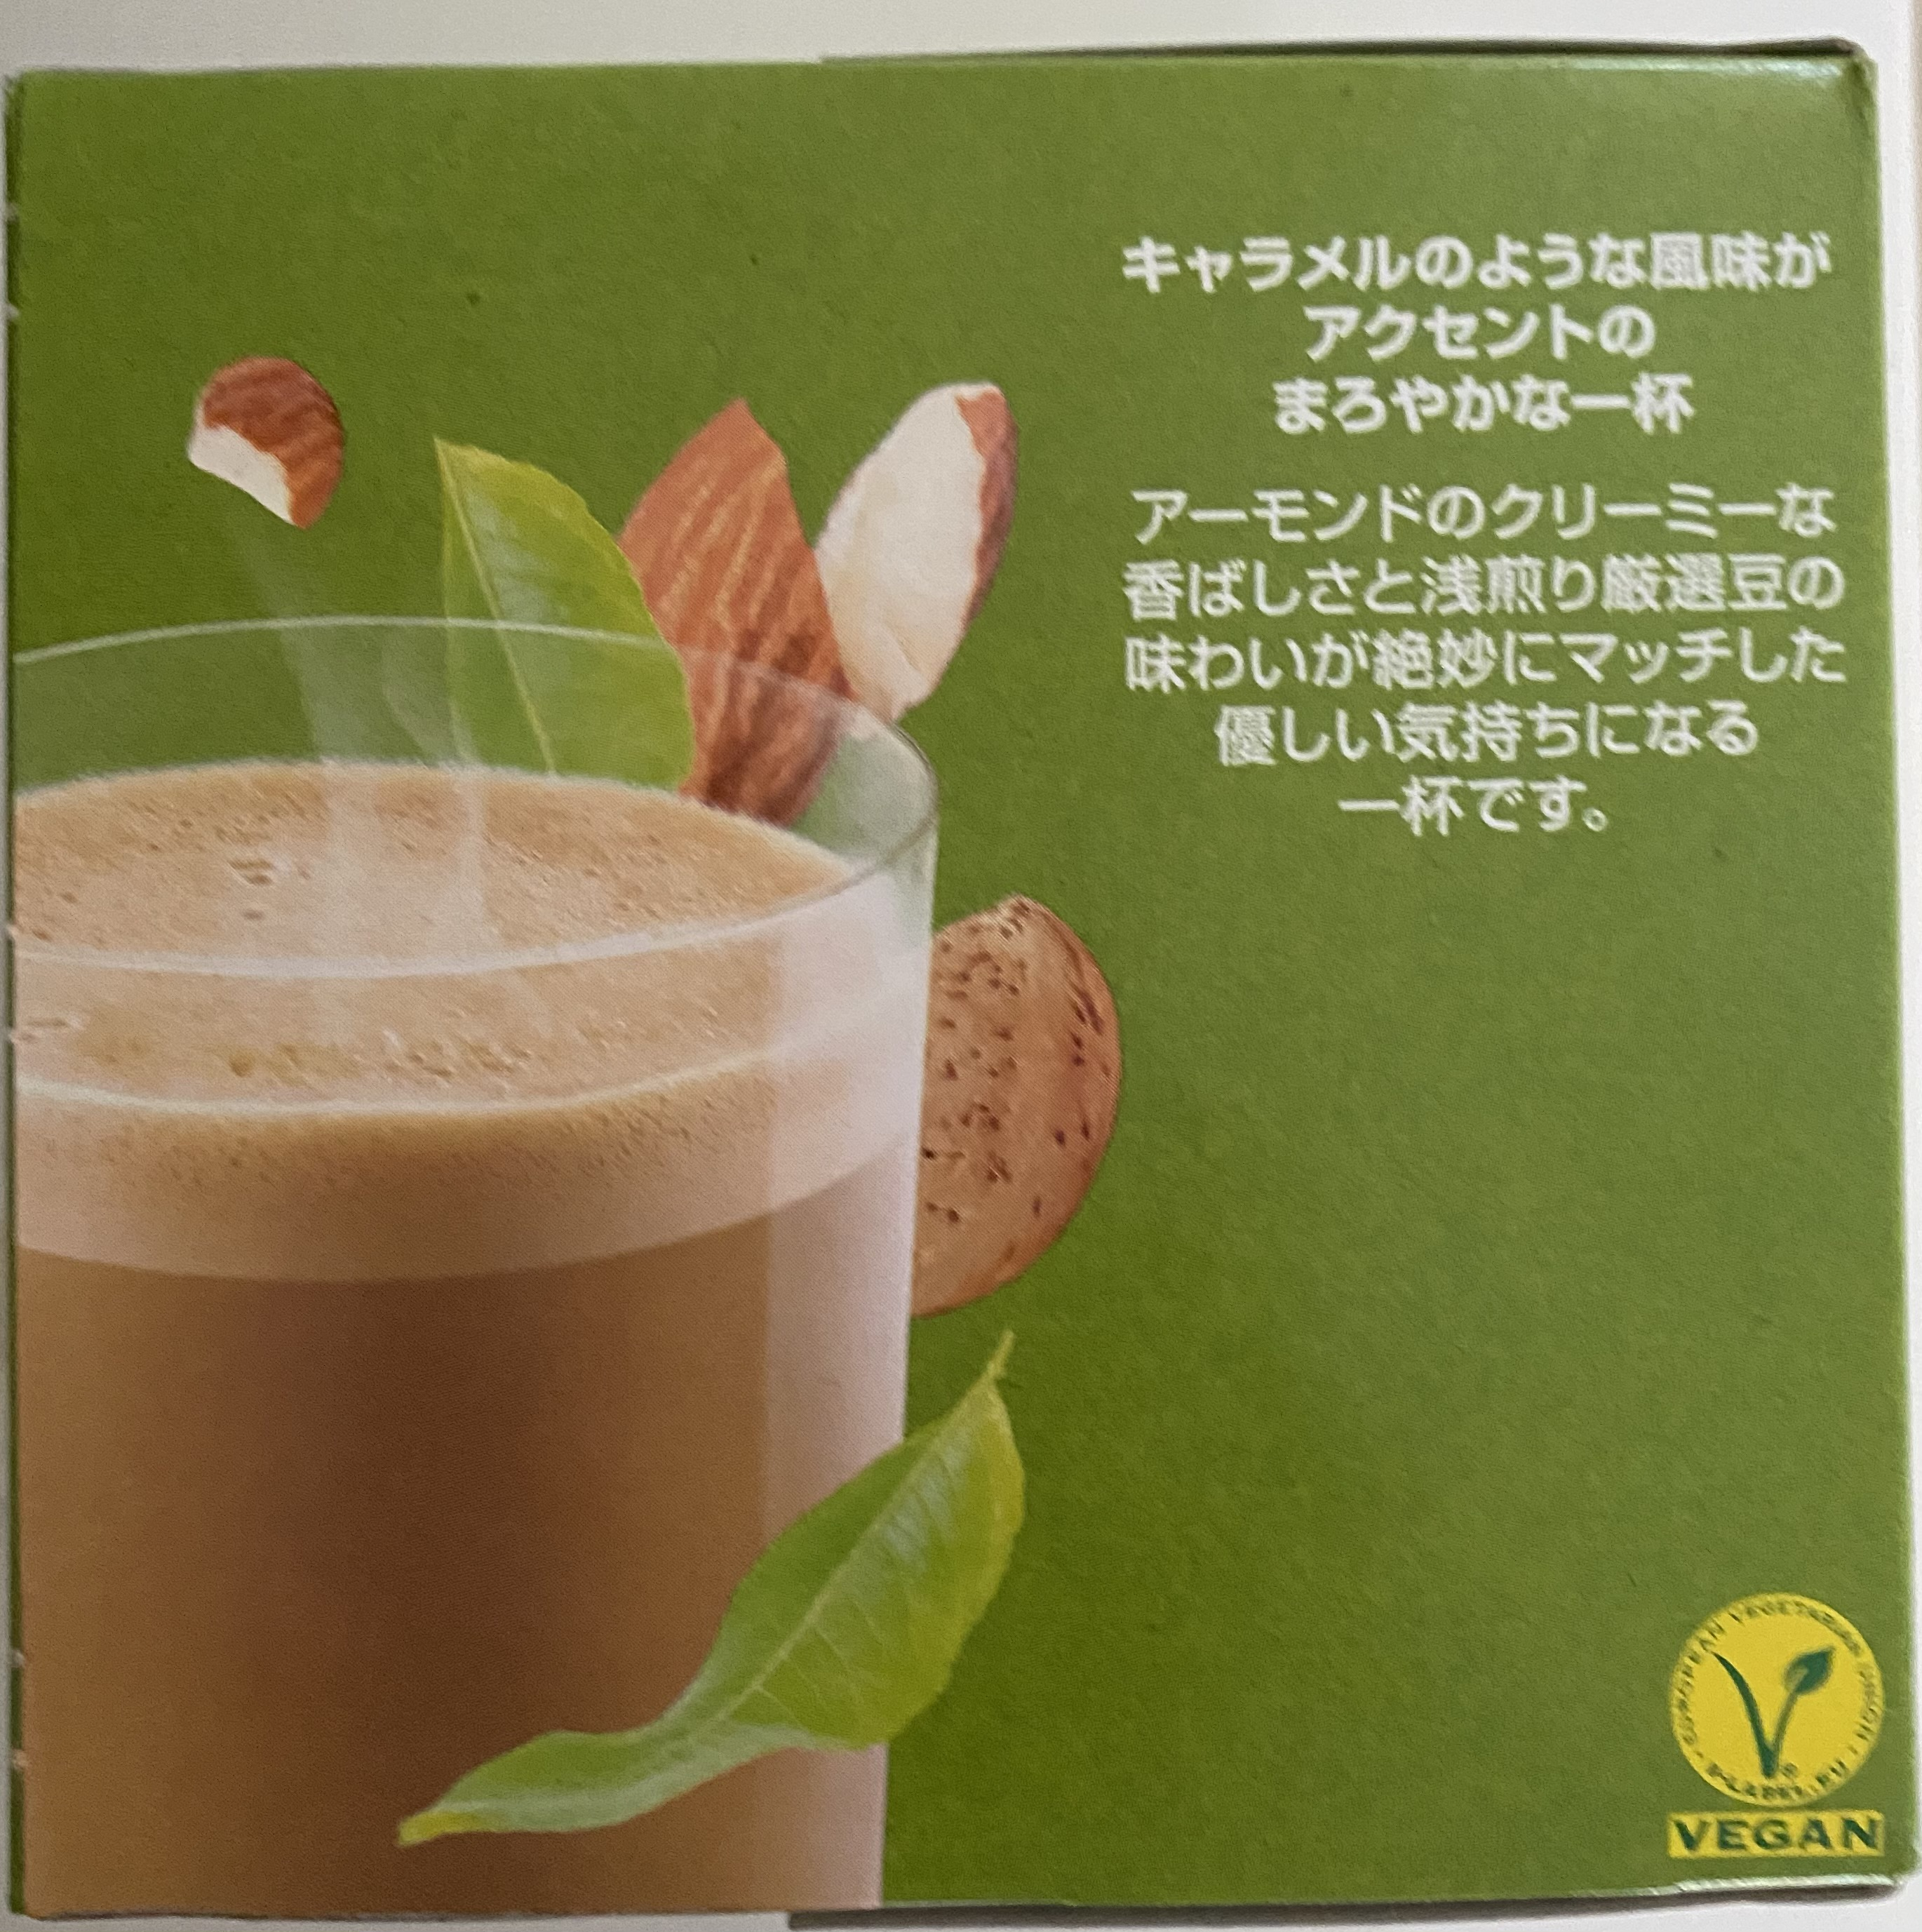 Nescafe Dolce Gusto Almond Latte capsules vegan mark